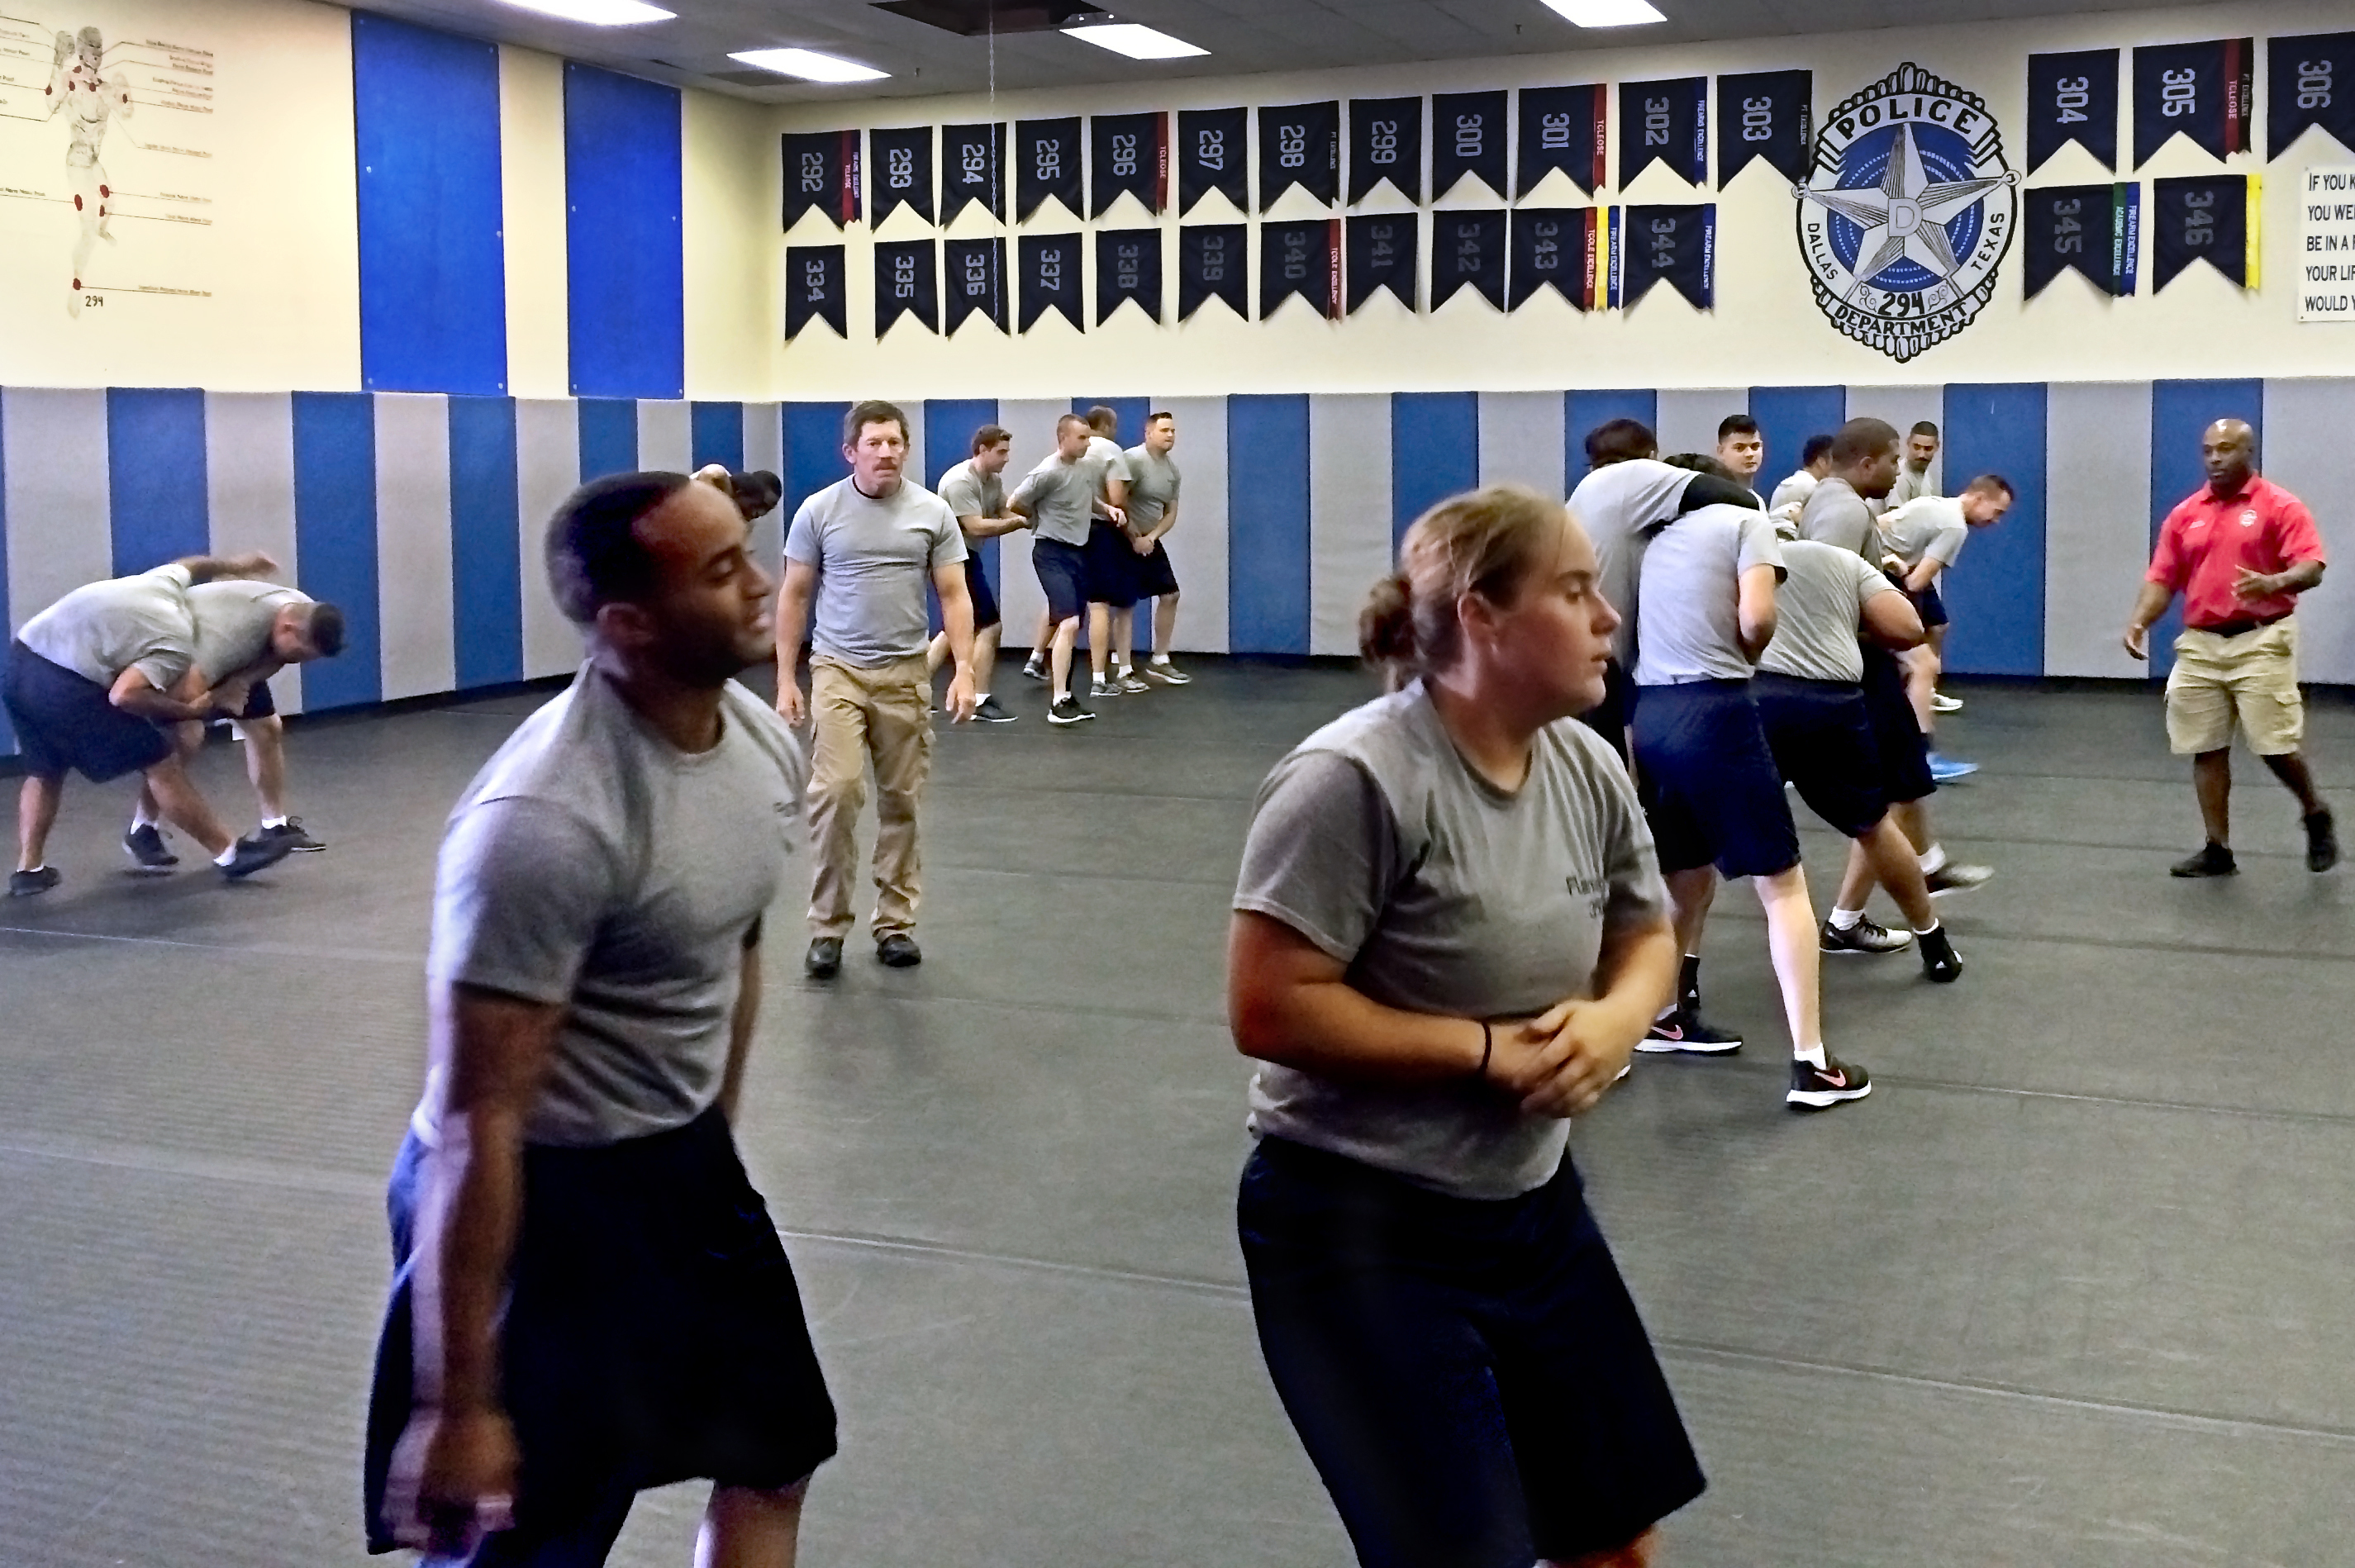 Trainees participate in a tactical defense class at the Dallas Police Basic Training Academy. The officer deaths in July strengthened the camaraderie among recruits training at the academy. (Photo by Yvonne Muther/NPR)